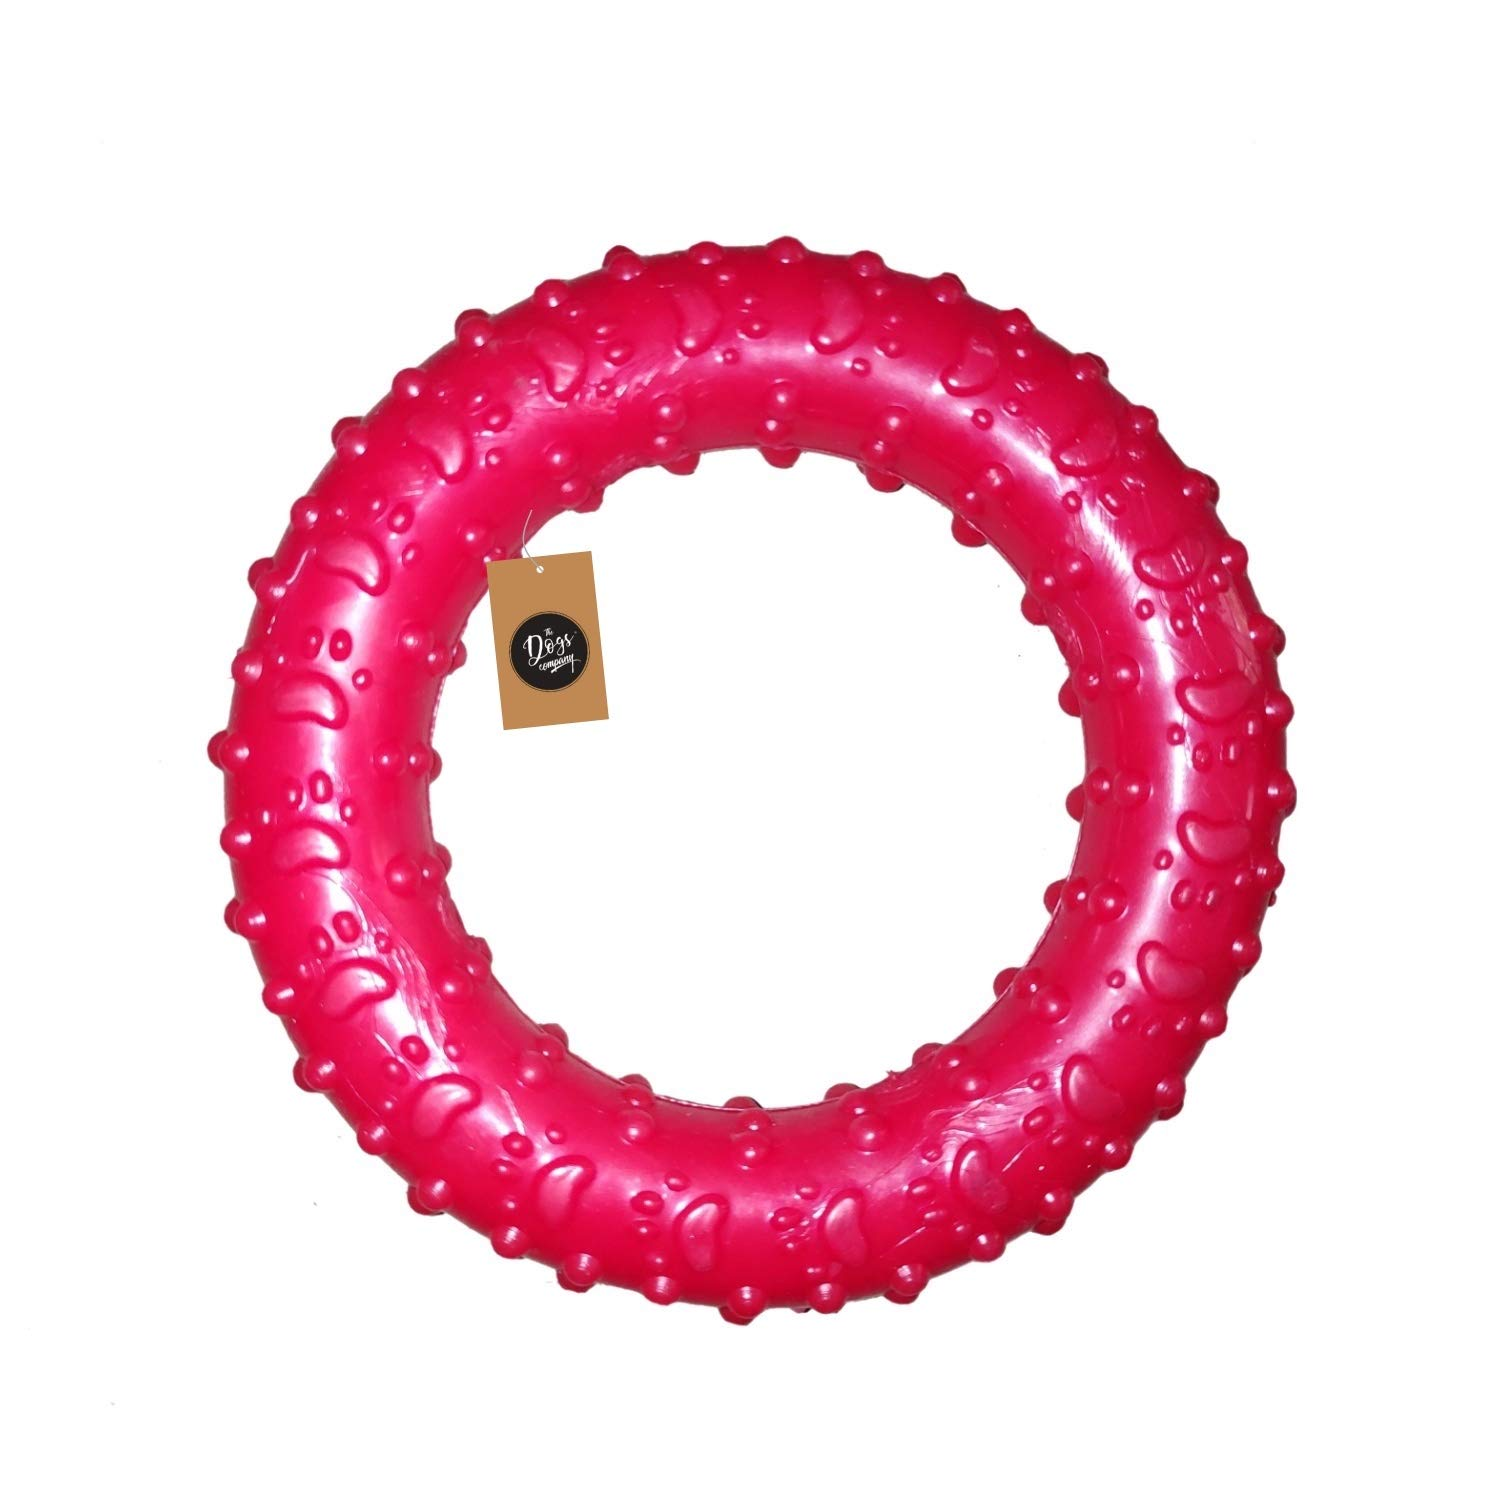 Rubber Chew Ring for Puppy Teething, Dog Toy for Small and Medium Dogs